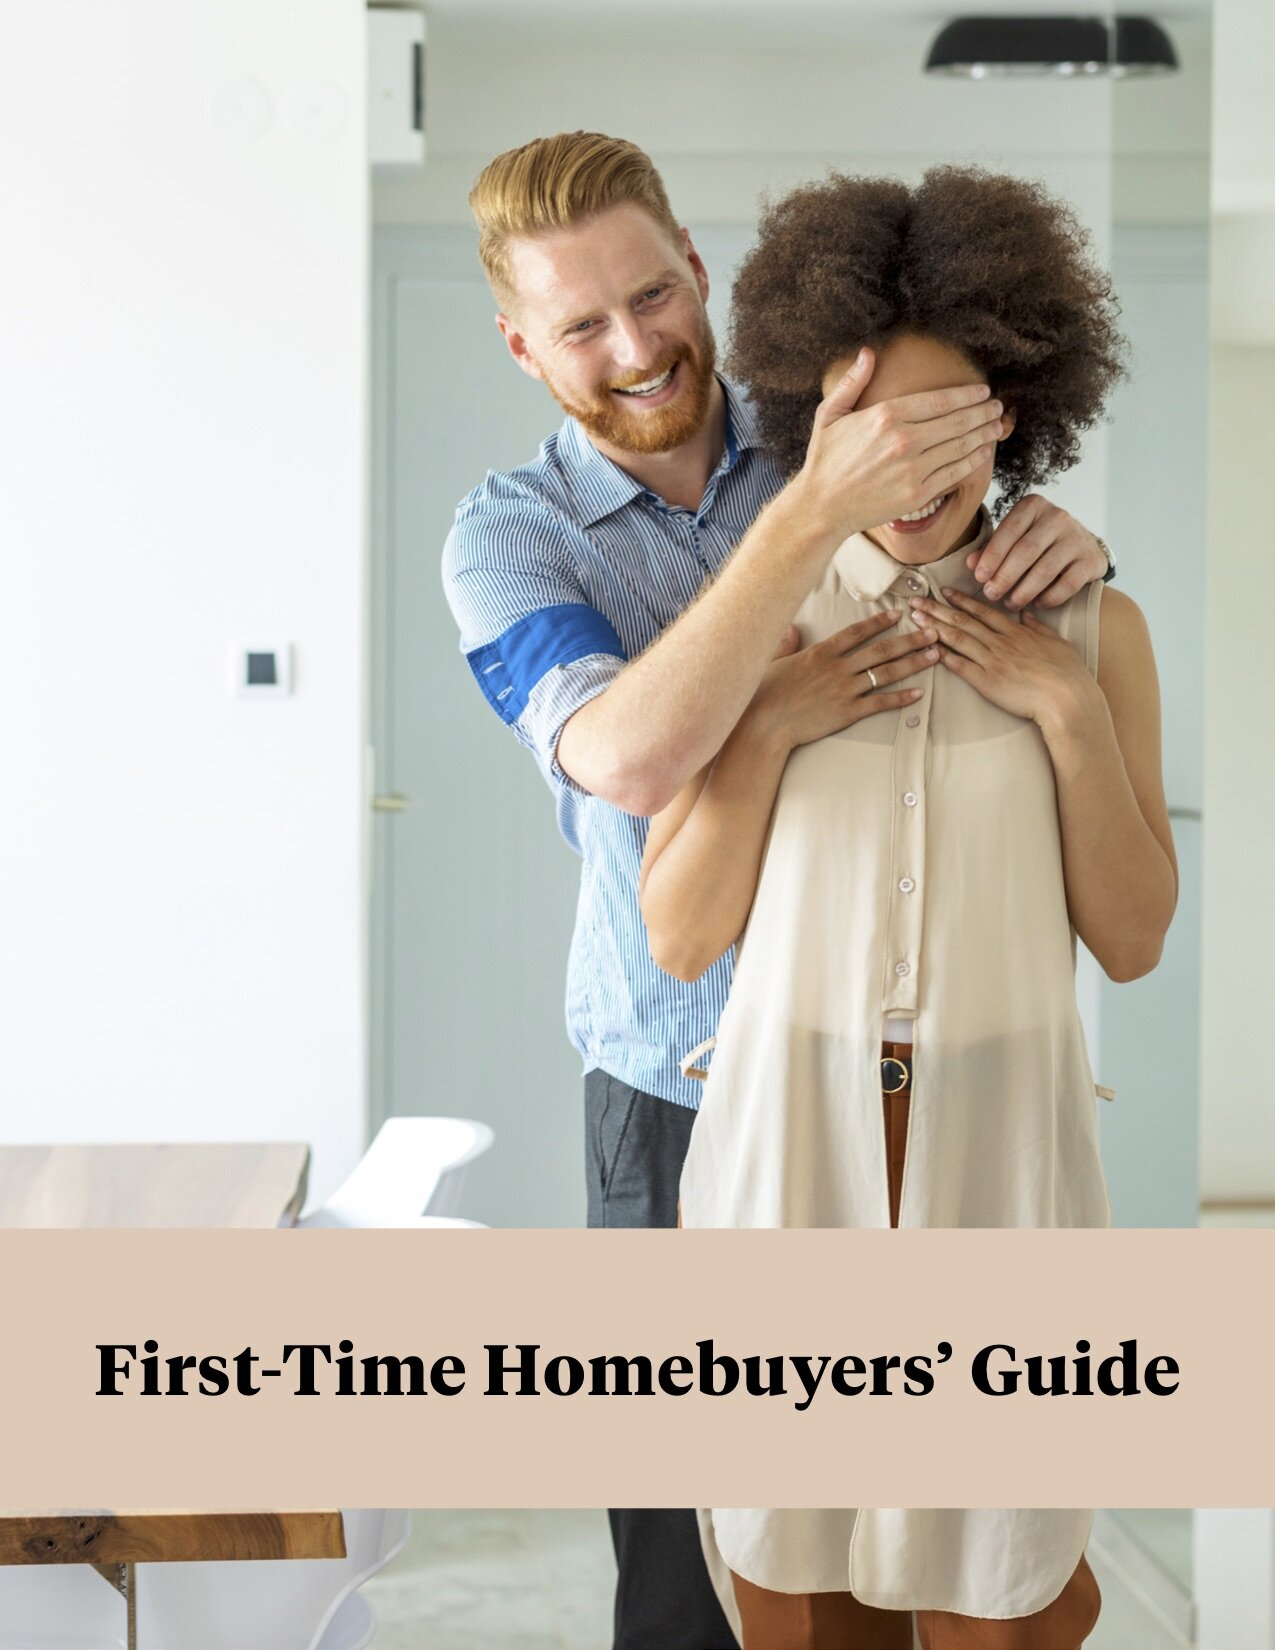 First+Time+Homebuyers+Guide.jpg